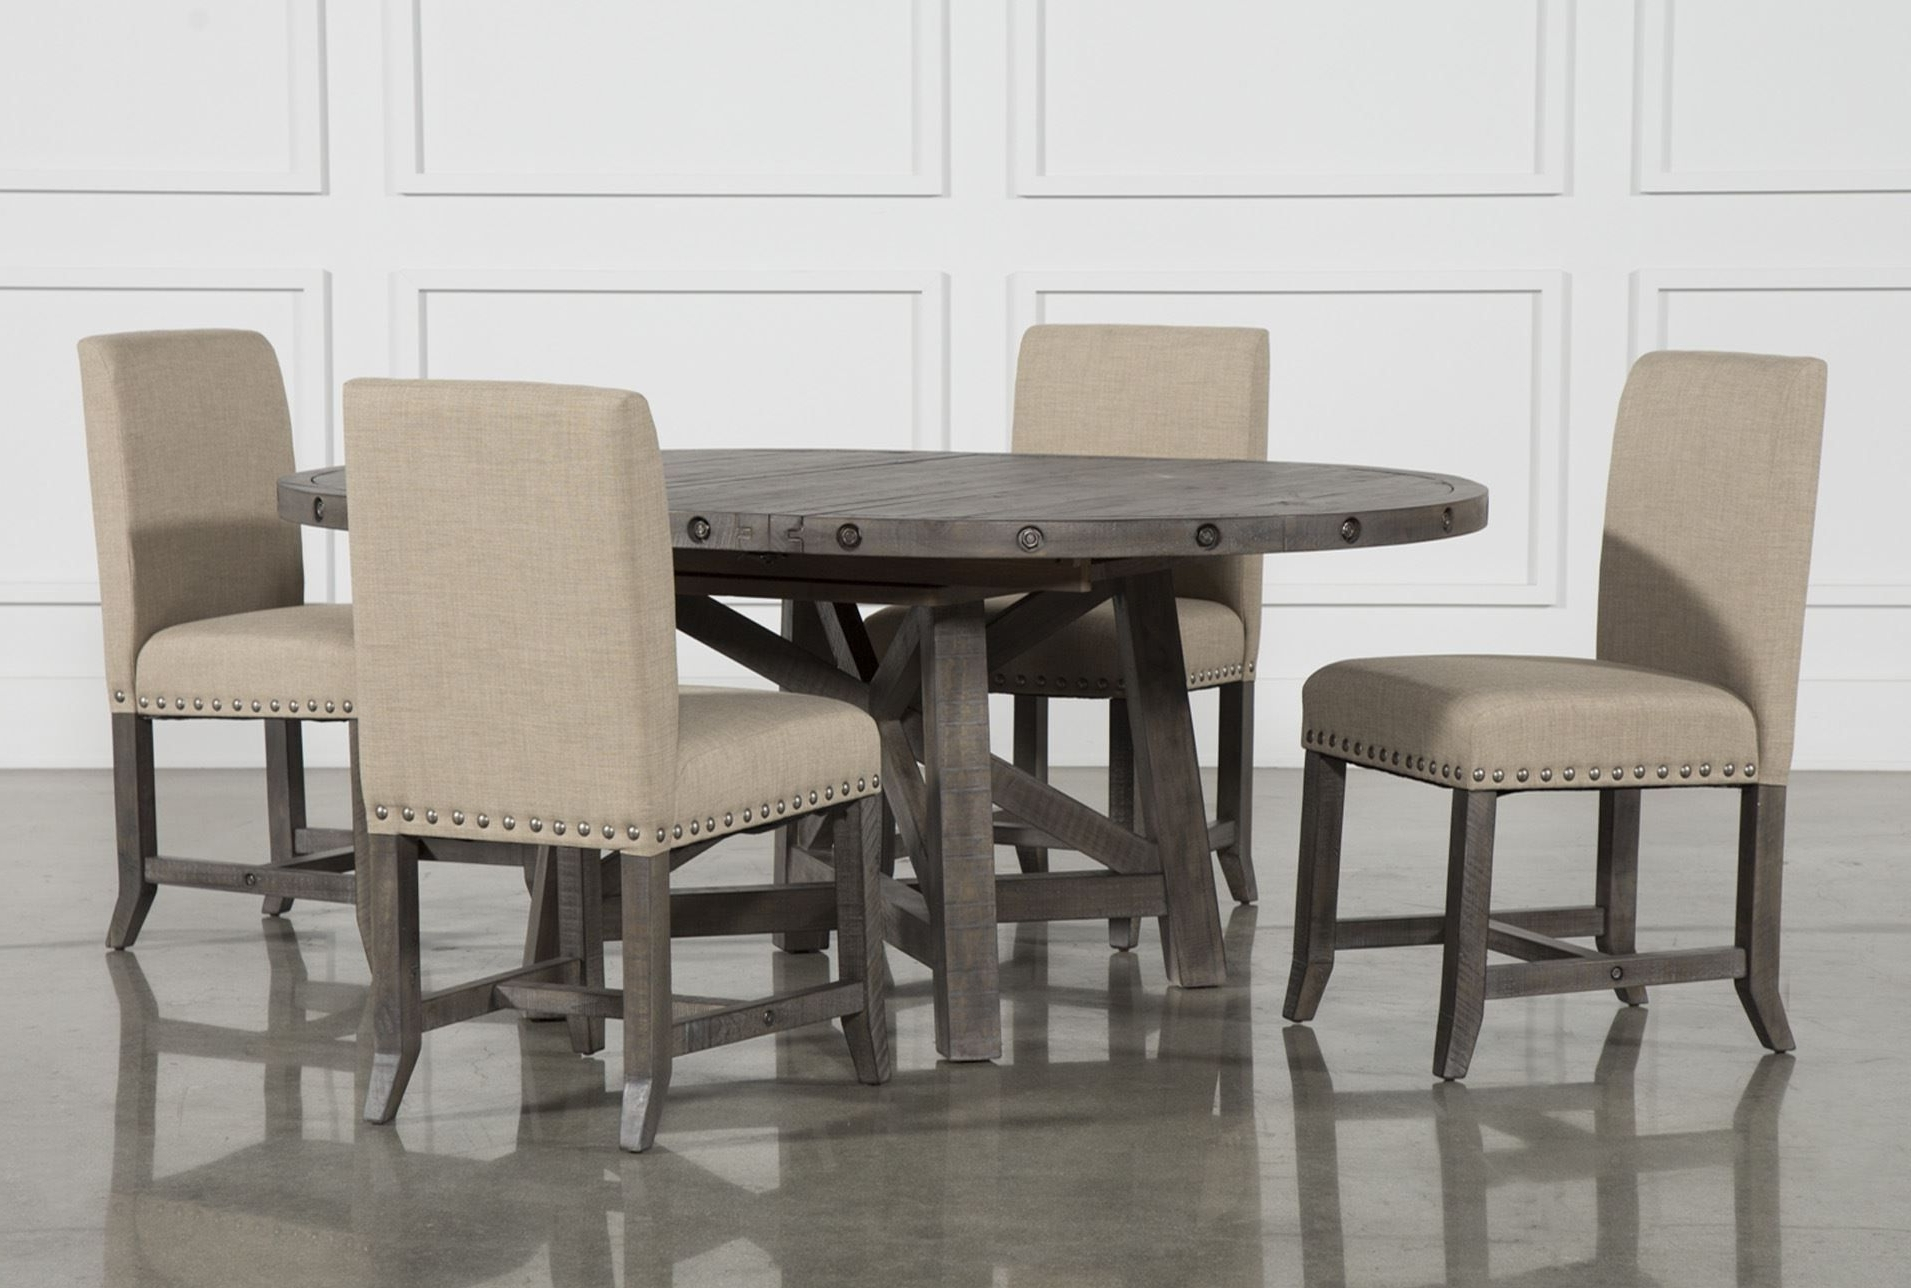 2018 Jaxon Grey 5 Piece Round Extension Dining Set W/upholstered Chairs Pertaining To Parquet 7 Piece Dining Sets (Gallery 12 of 25)